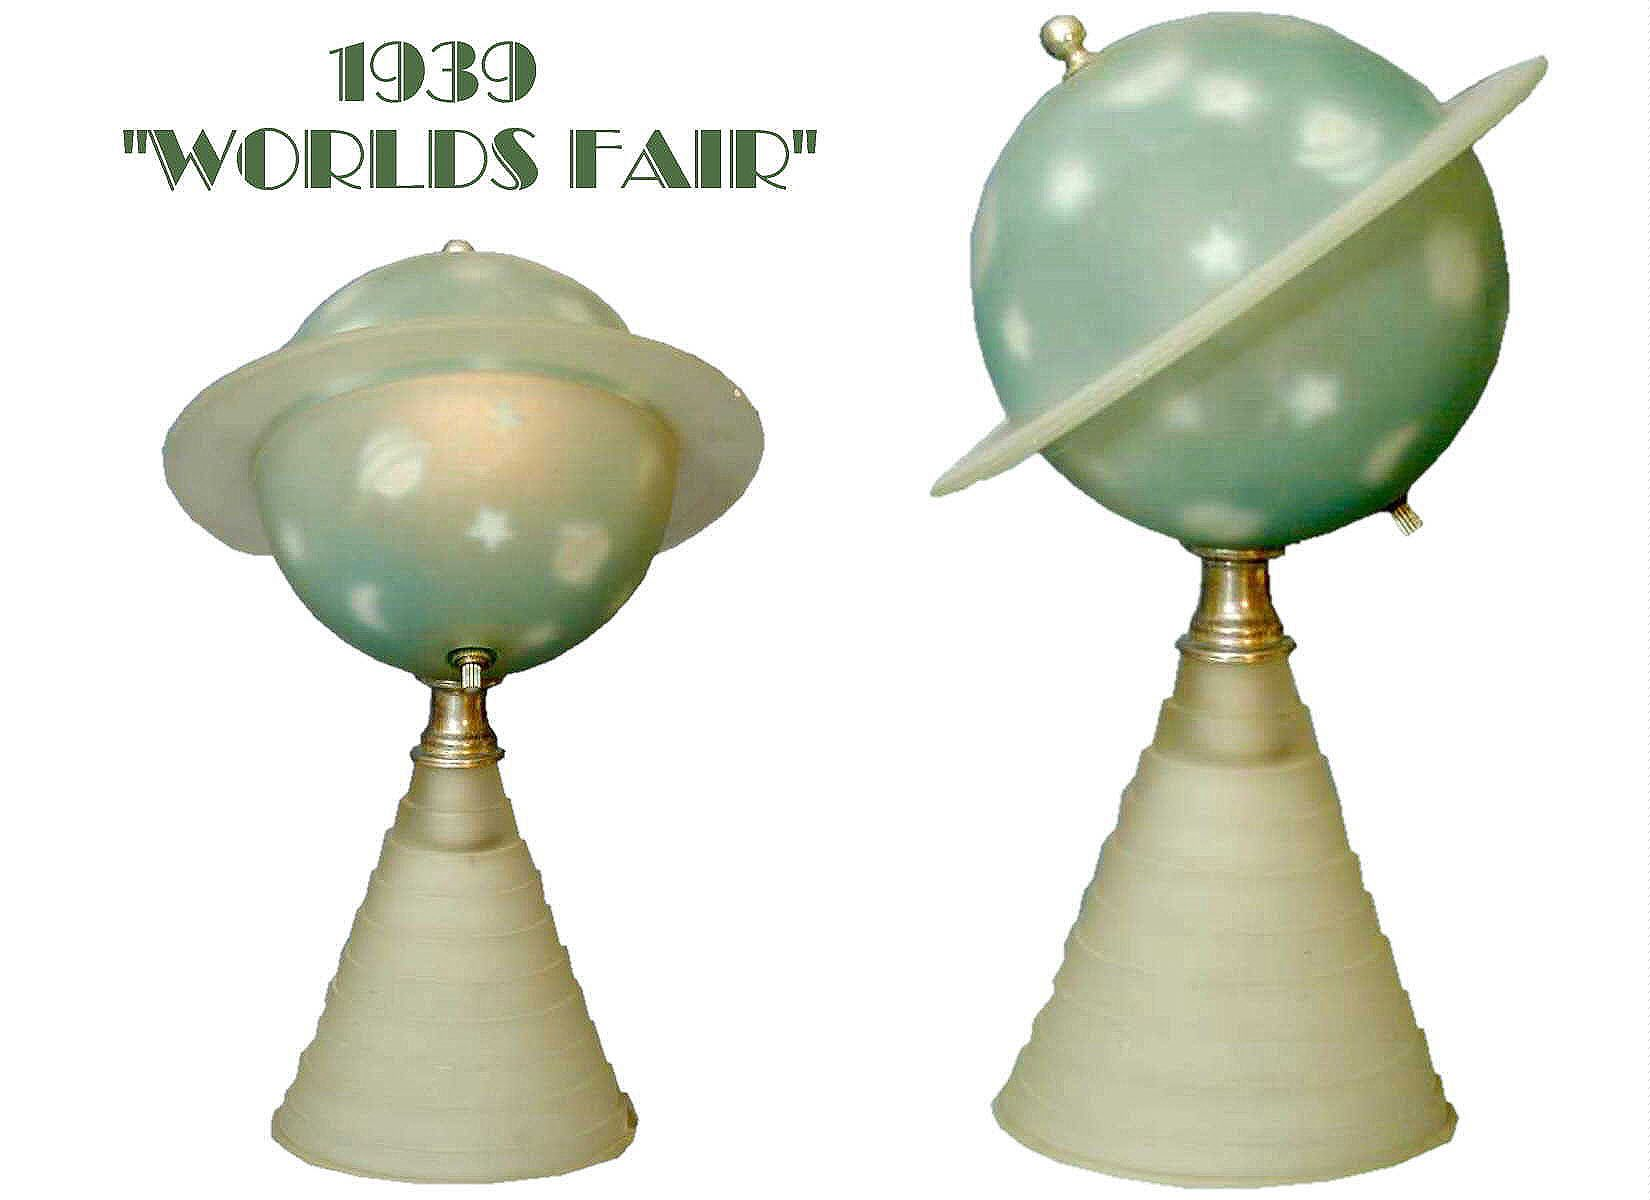 Lighting Lamp Worlds Fair Saturn Lamp 1939 Produced By Houze Glass Company Lamp Is Very Deco Reversed P Lamp Light Lamp Reverse Painted